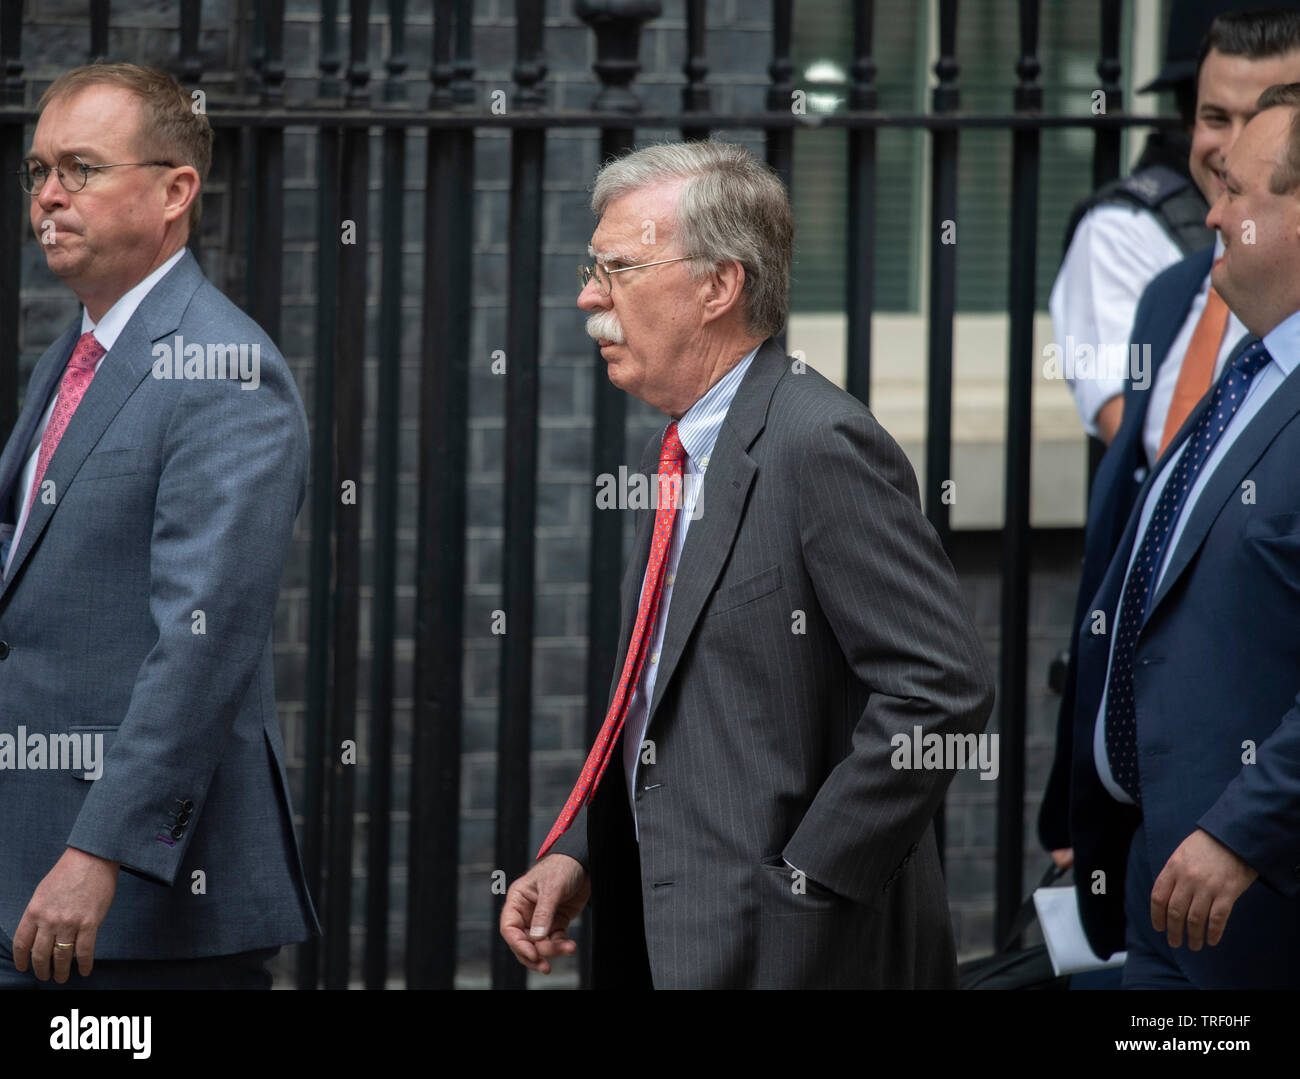 10 Downing Street, London, UK. 4th June 2019. On day 2 of the State Visit of the President and First Lady of the USA, US National Security Advisor John Bolton (centre) arrives in Downing Street for talks. Credit: Malcolm Park/Alamy Live News. Stock Photo